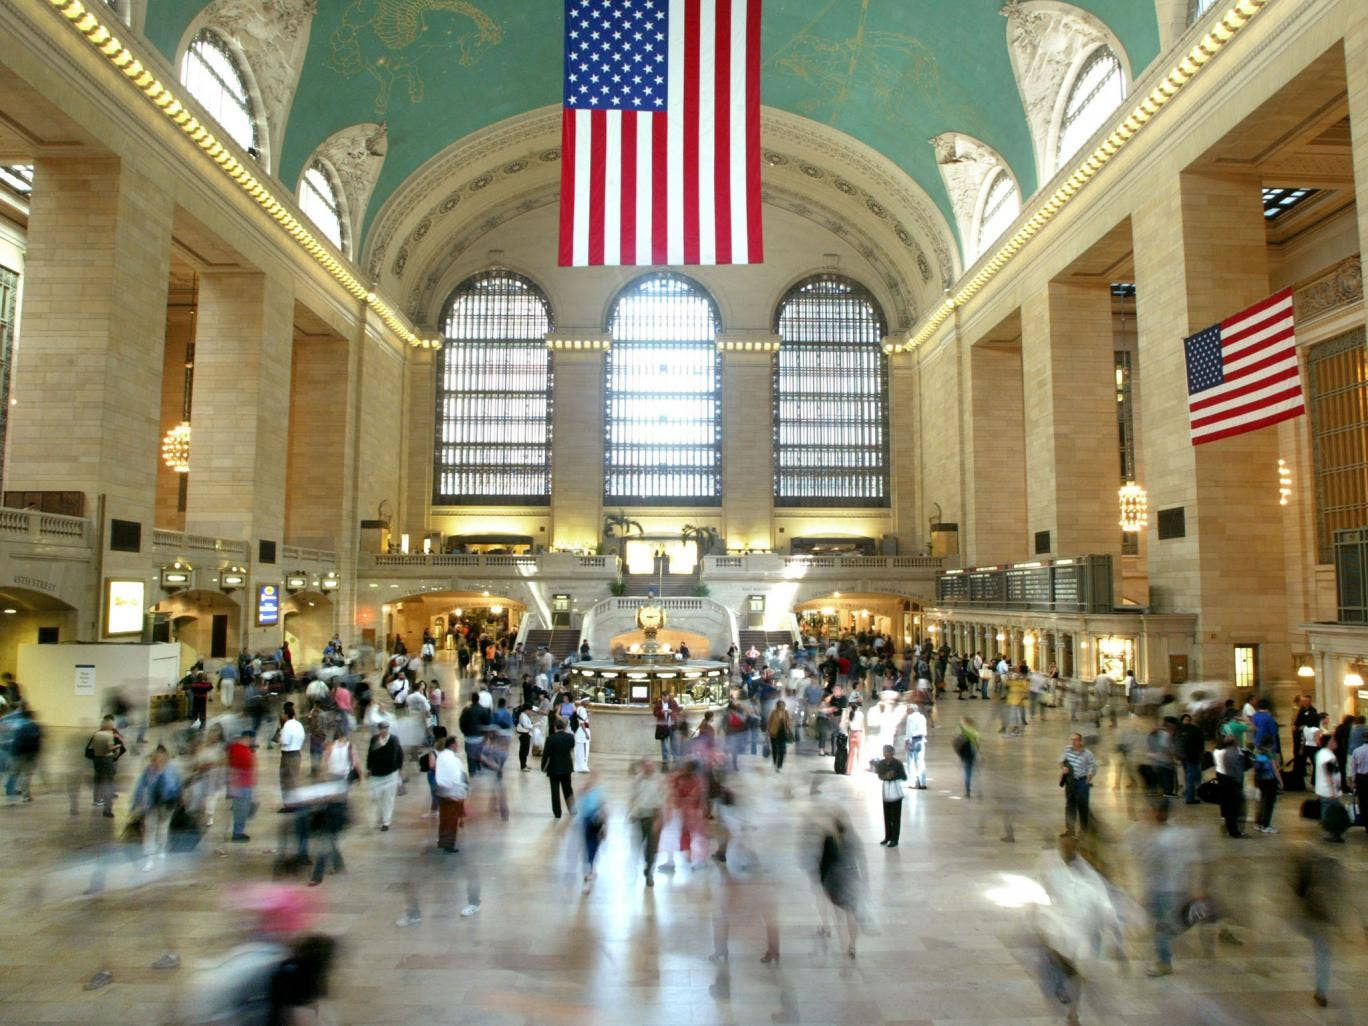 New York's Grand Central Station, one of the country's most impressive